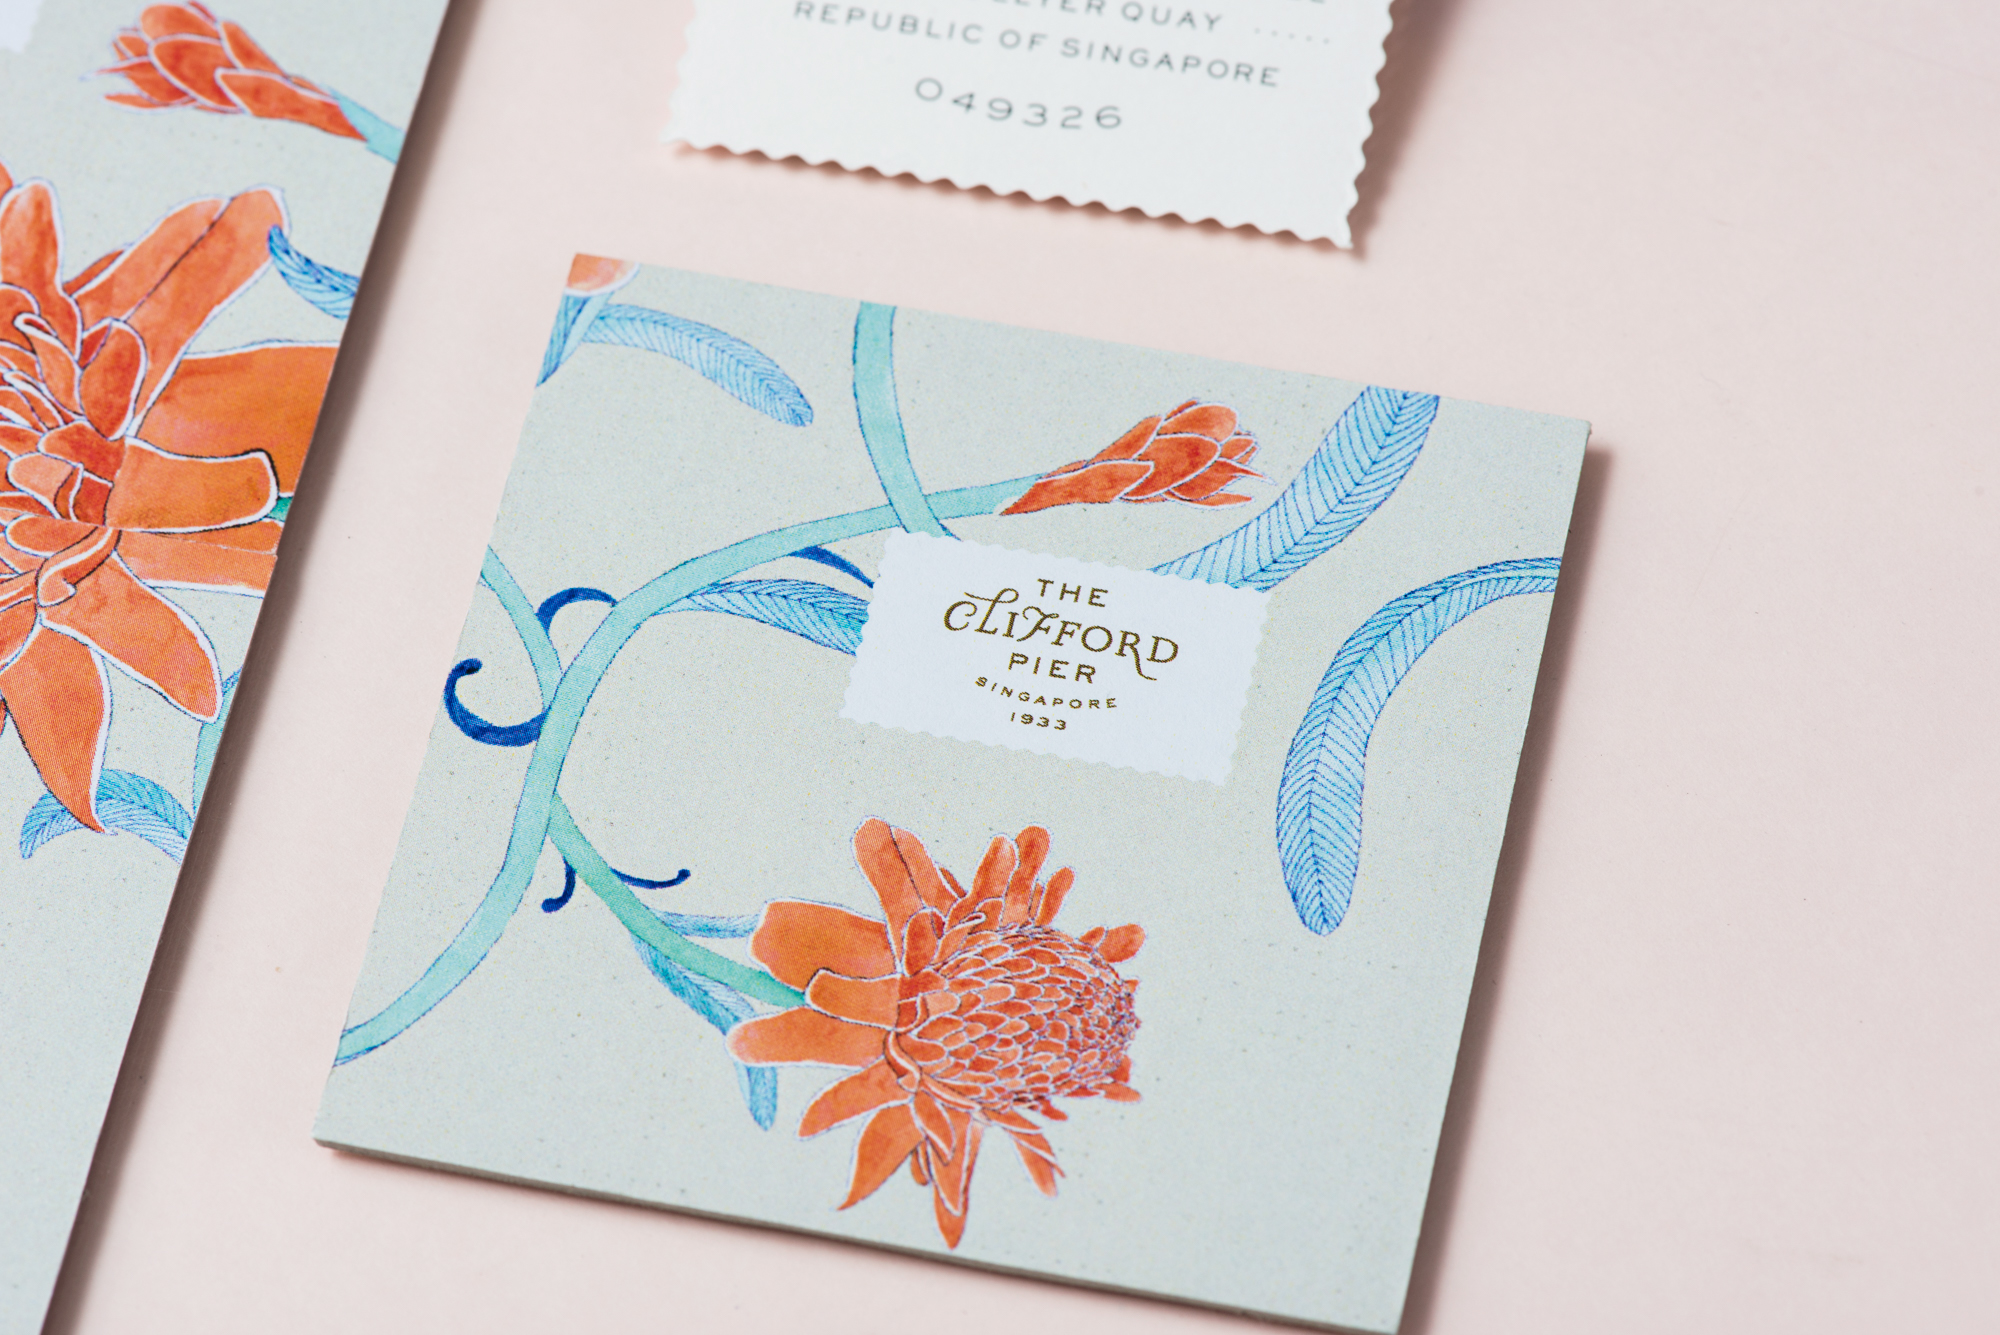 Brand Identity for The Clifford Pier Singapore